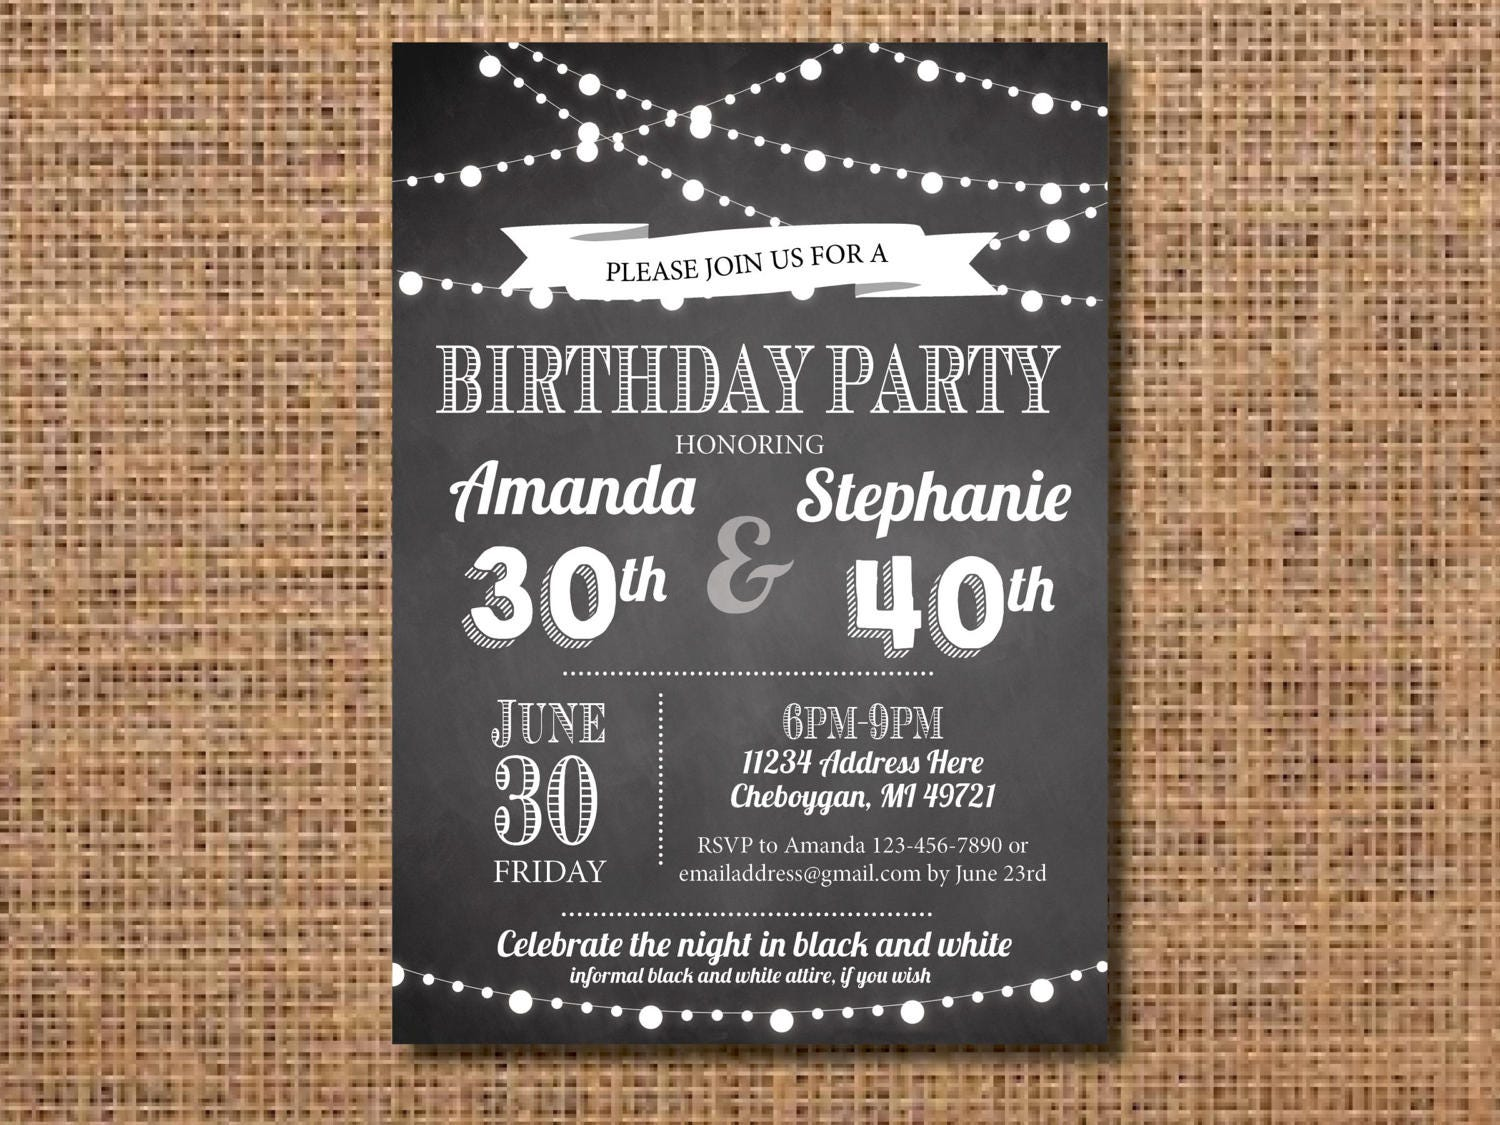 Adult Joint Birthday Party Invitation Black and White Birthday